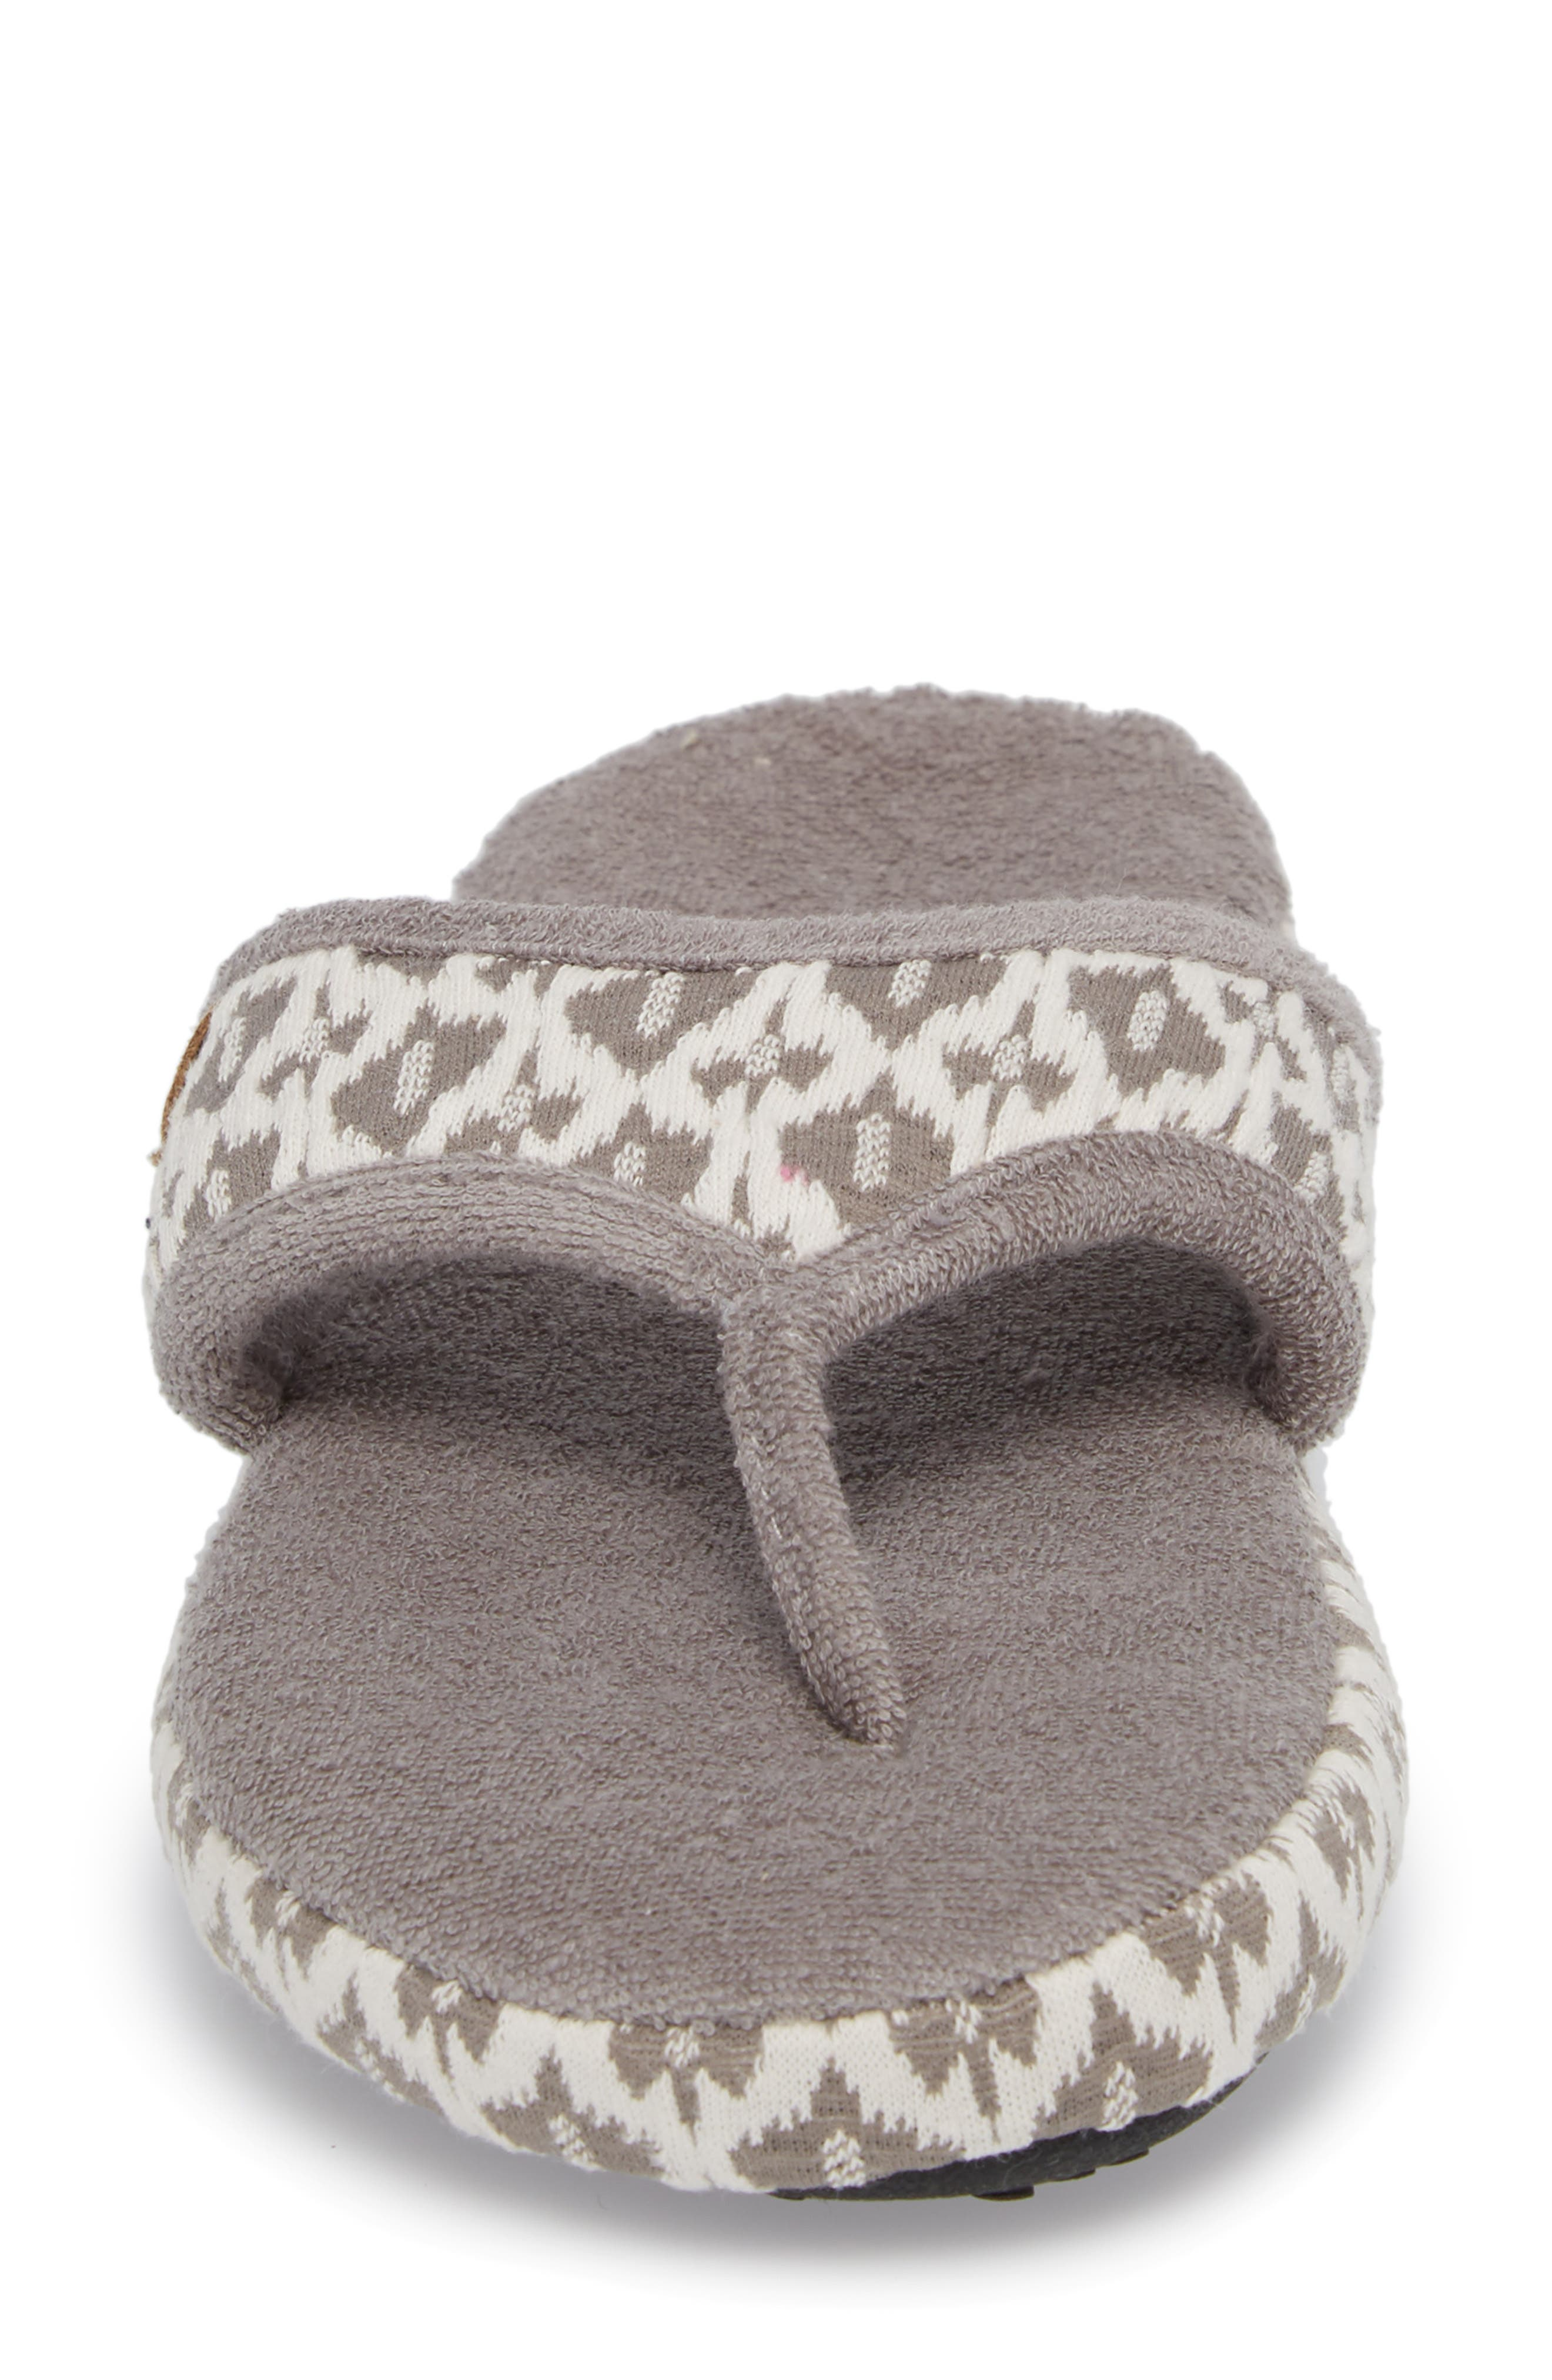 'Summerweight' Slipper,                             Alternate thumbnail 4, color,                             ASH TRIBAL